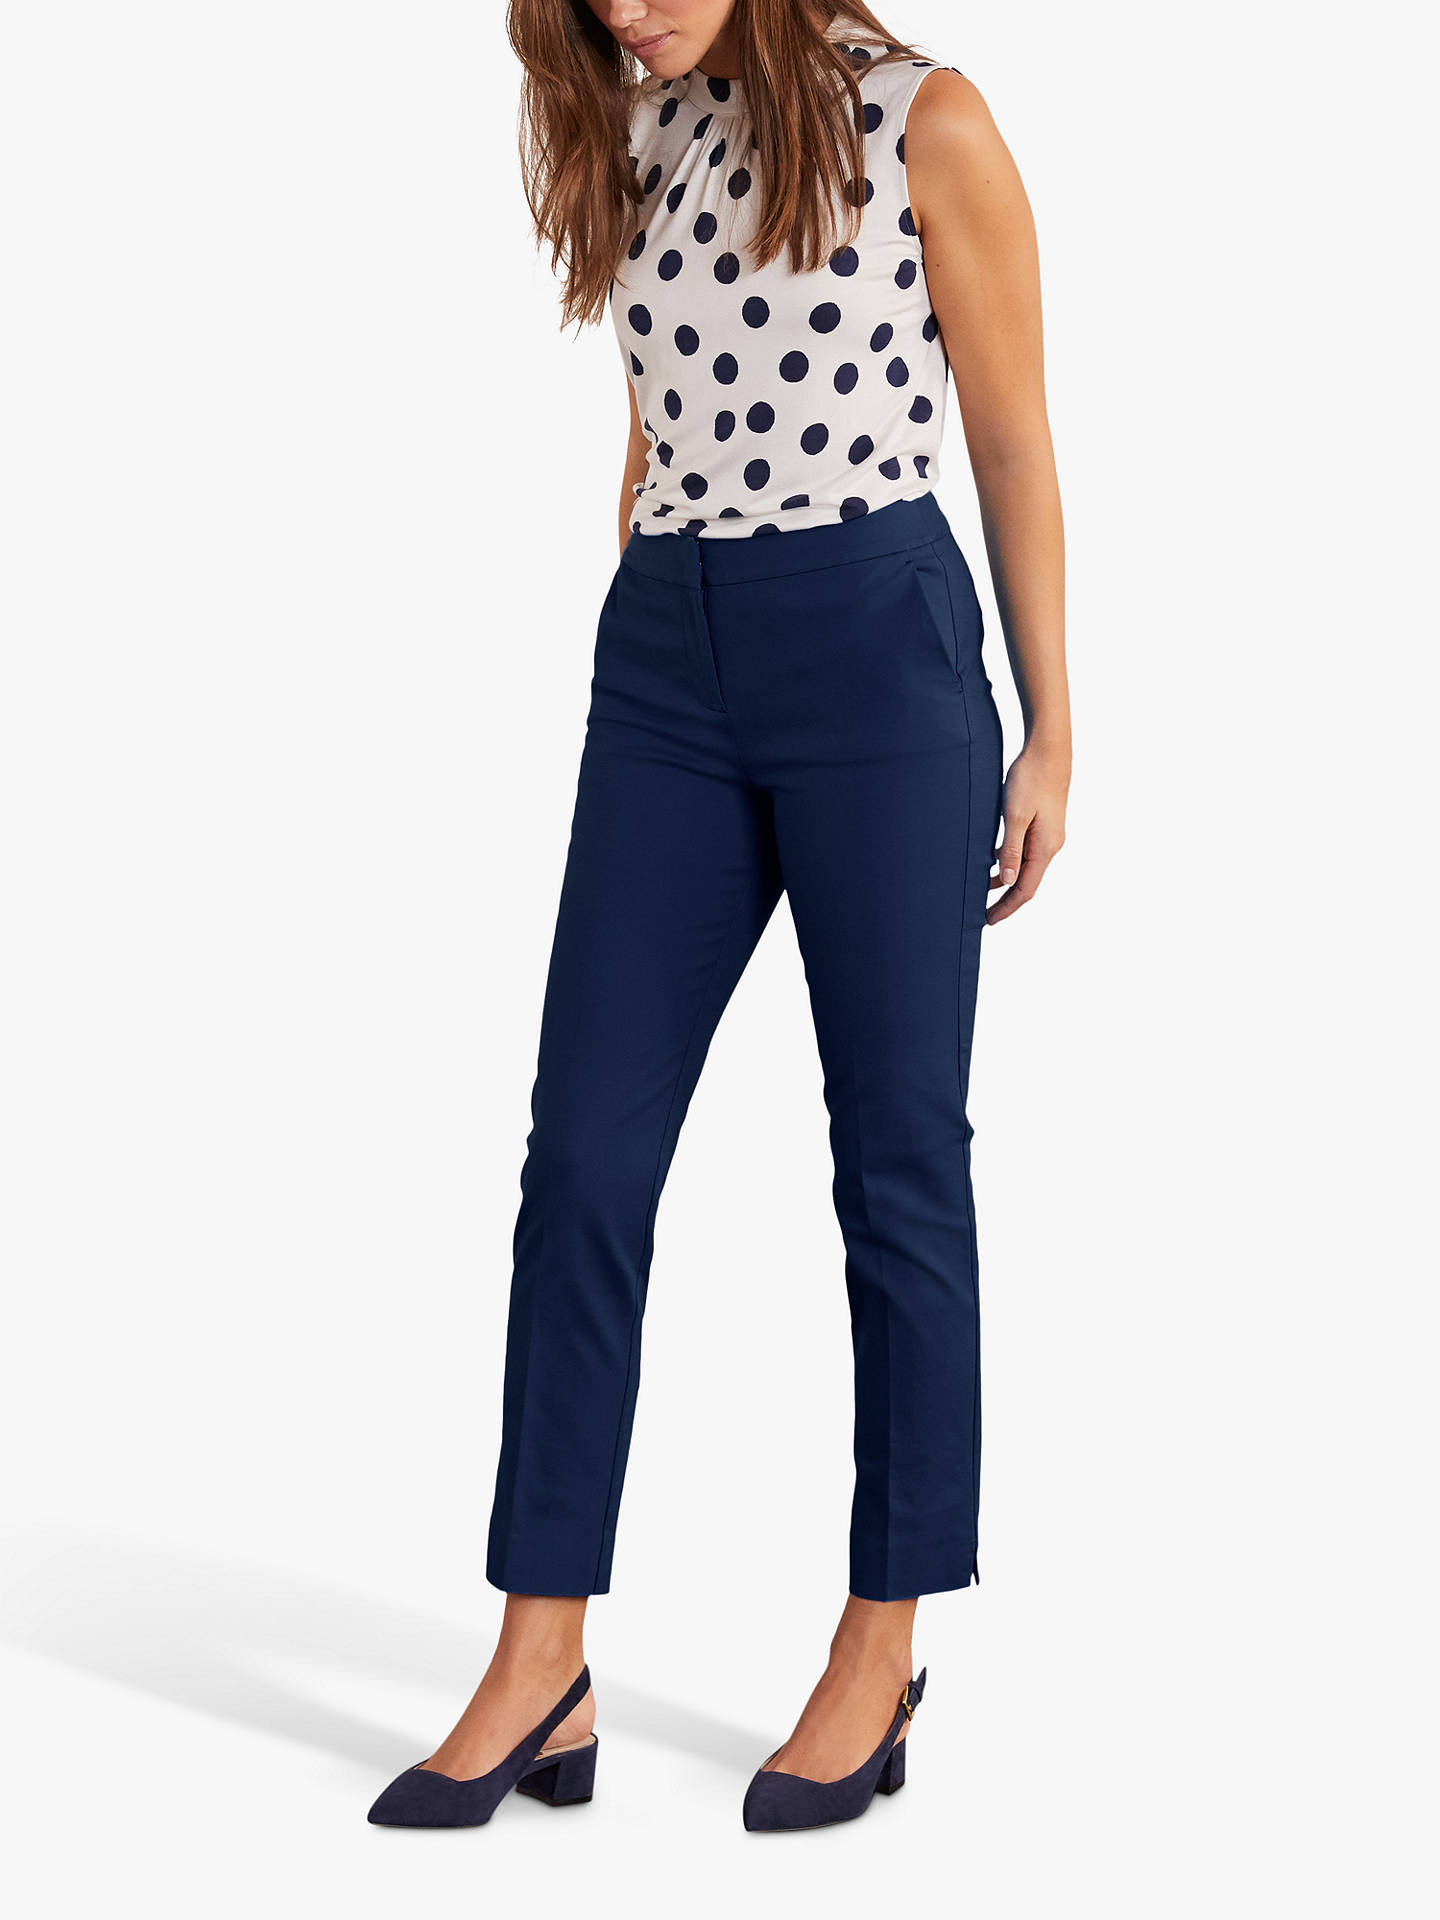 BuyBoden Hampshire 7/8 Trousers, Navy, 8 Online at johnlewis.com